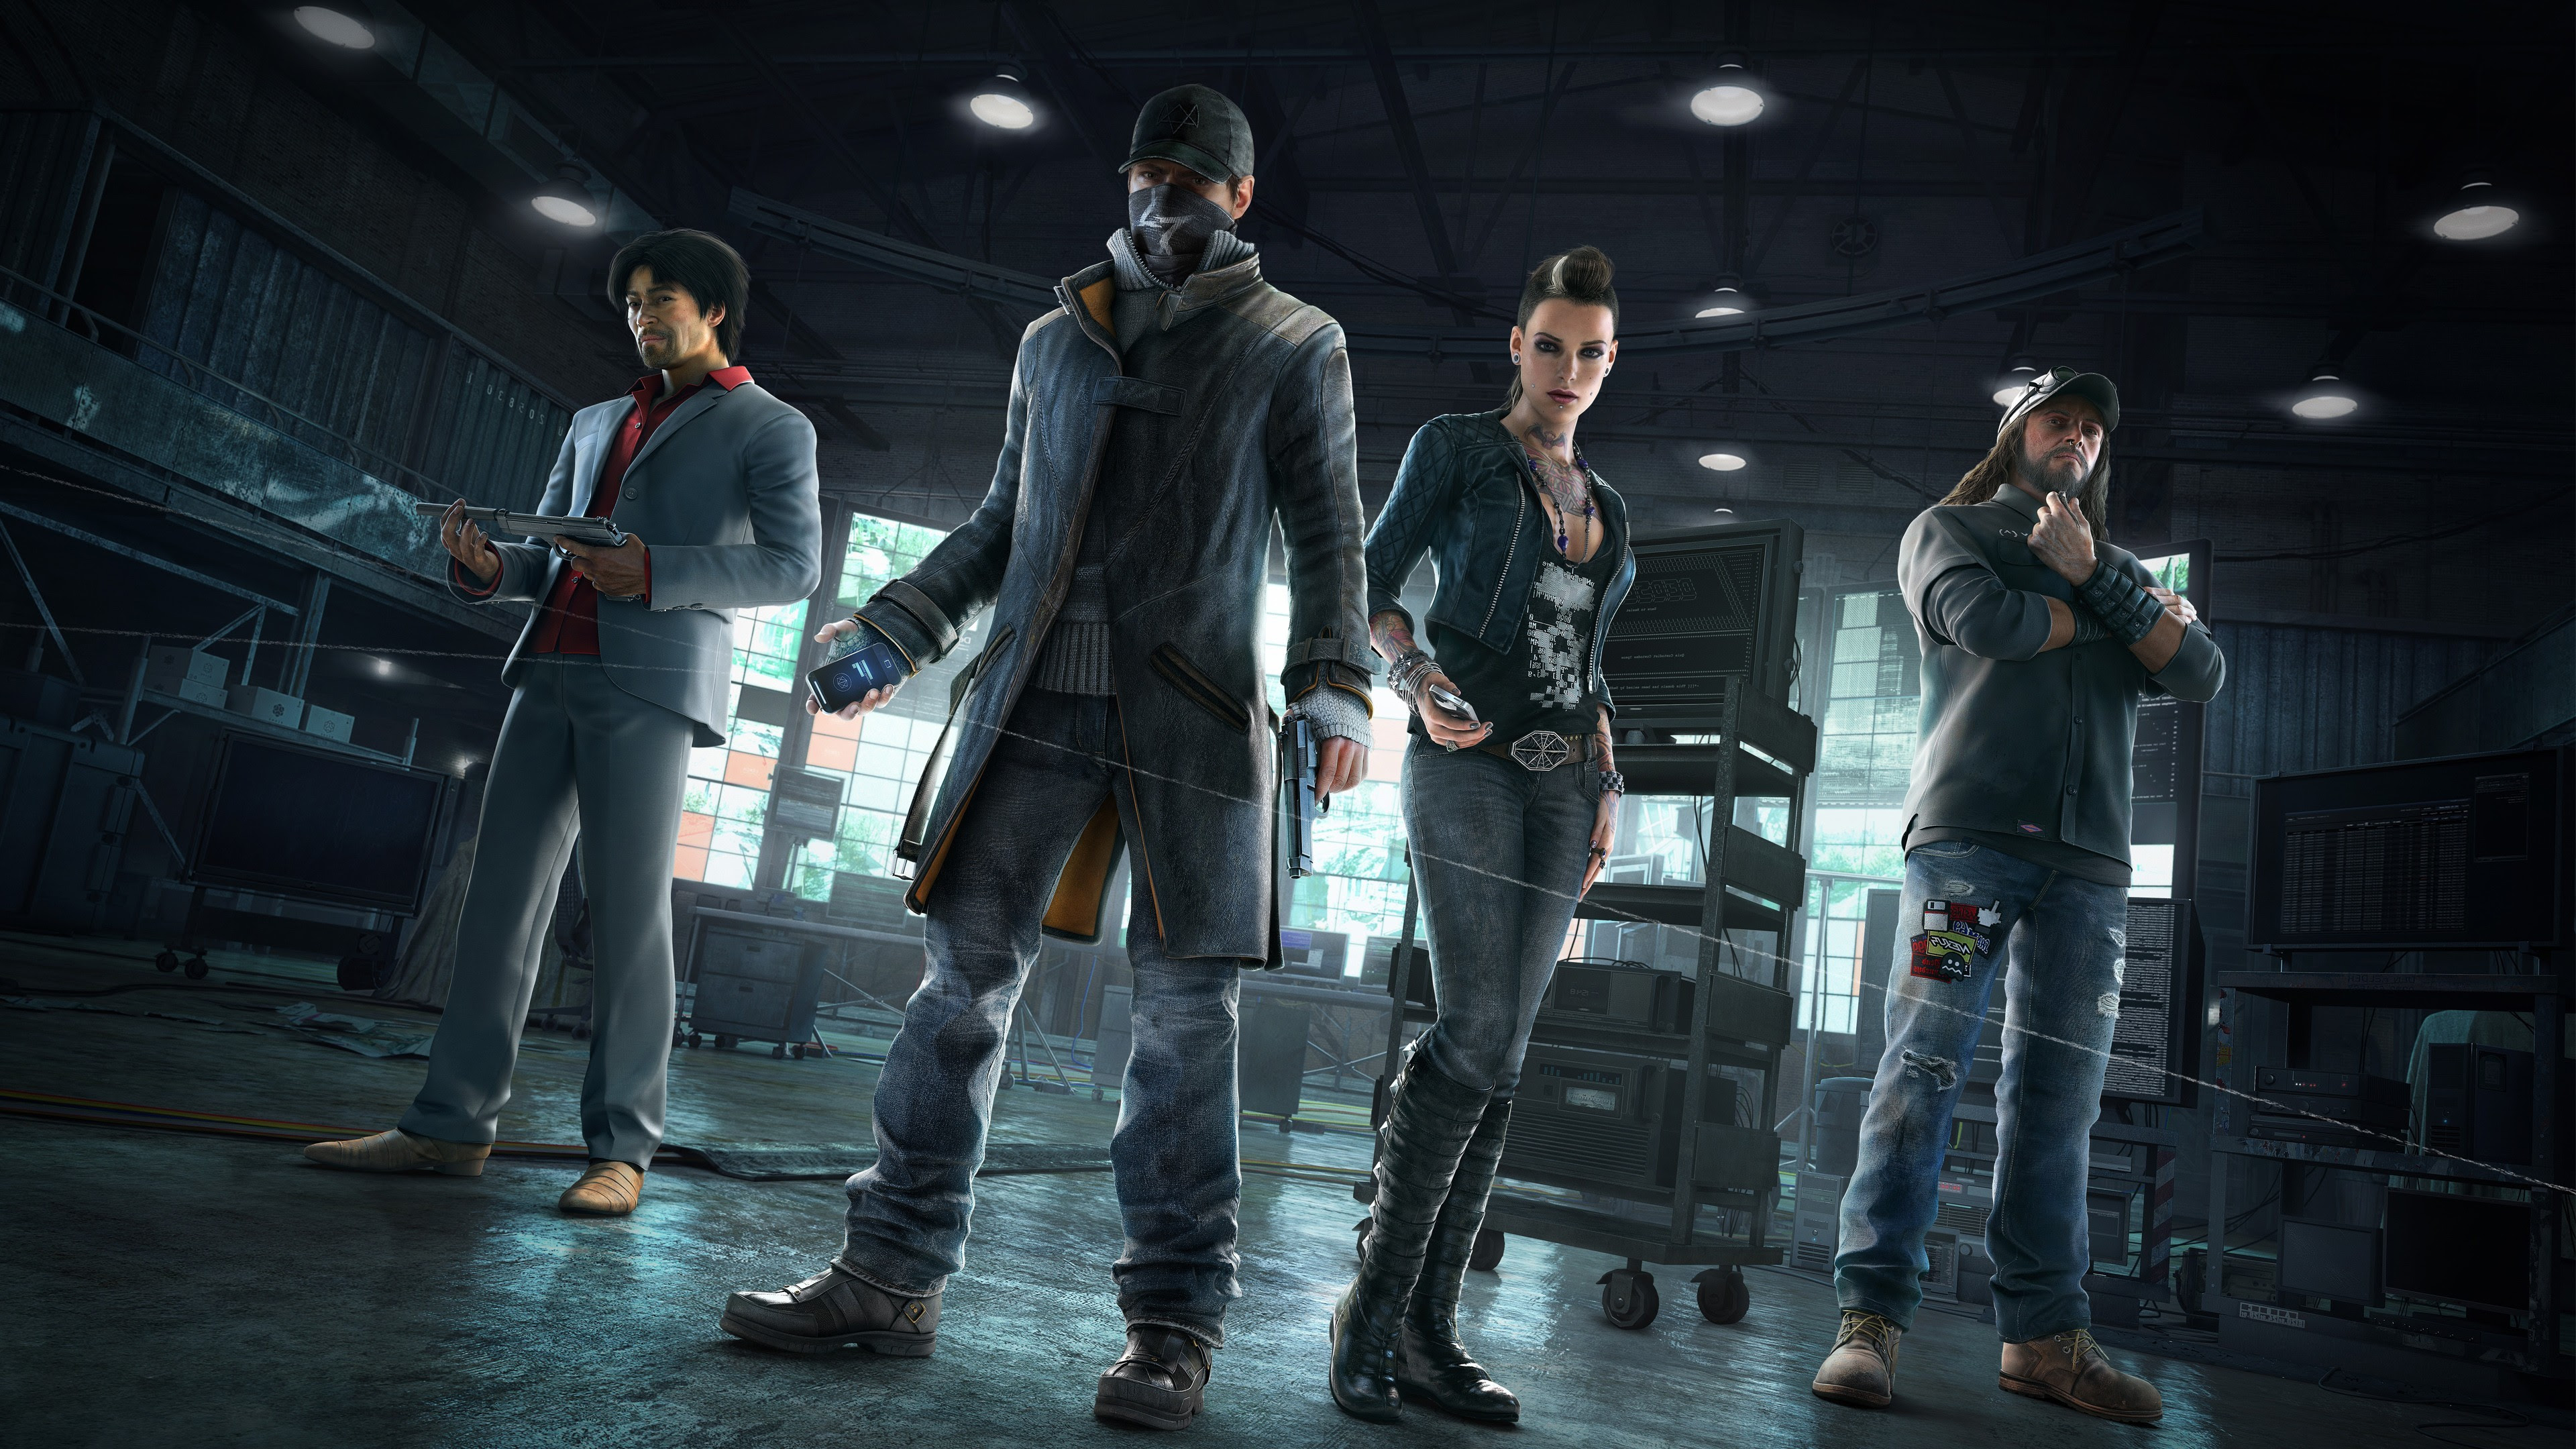 Watch Dogs 2 Wallpapers (77+ images)